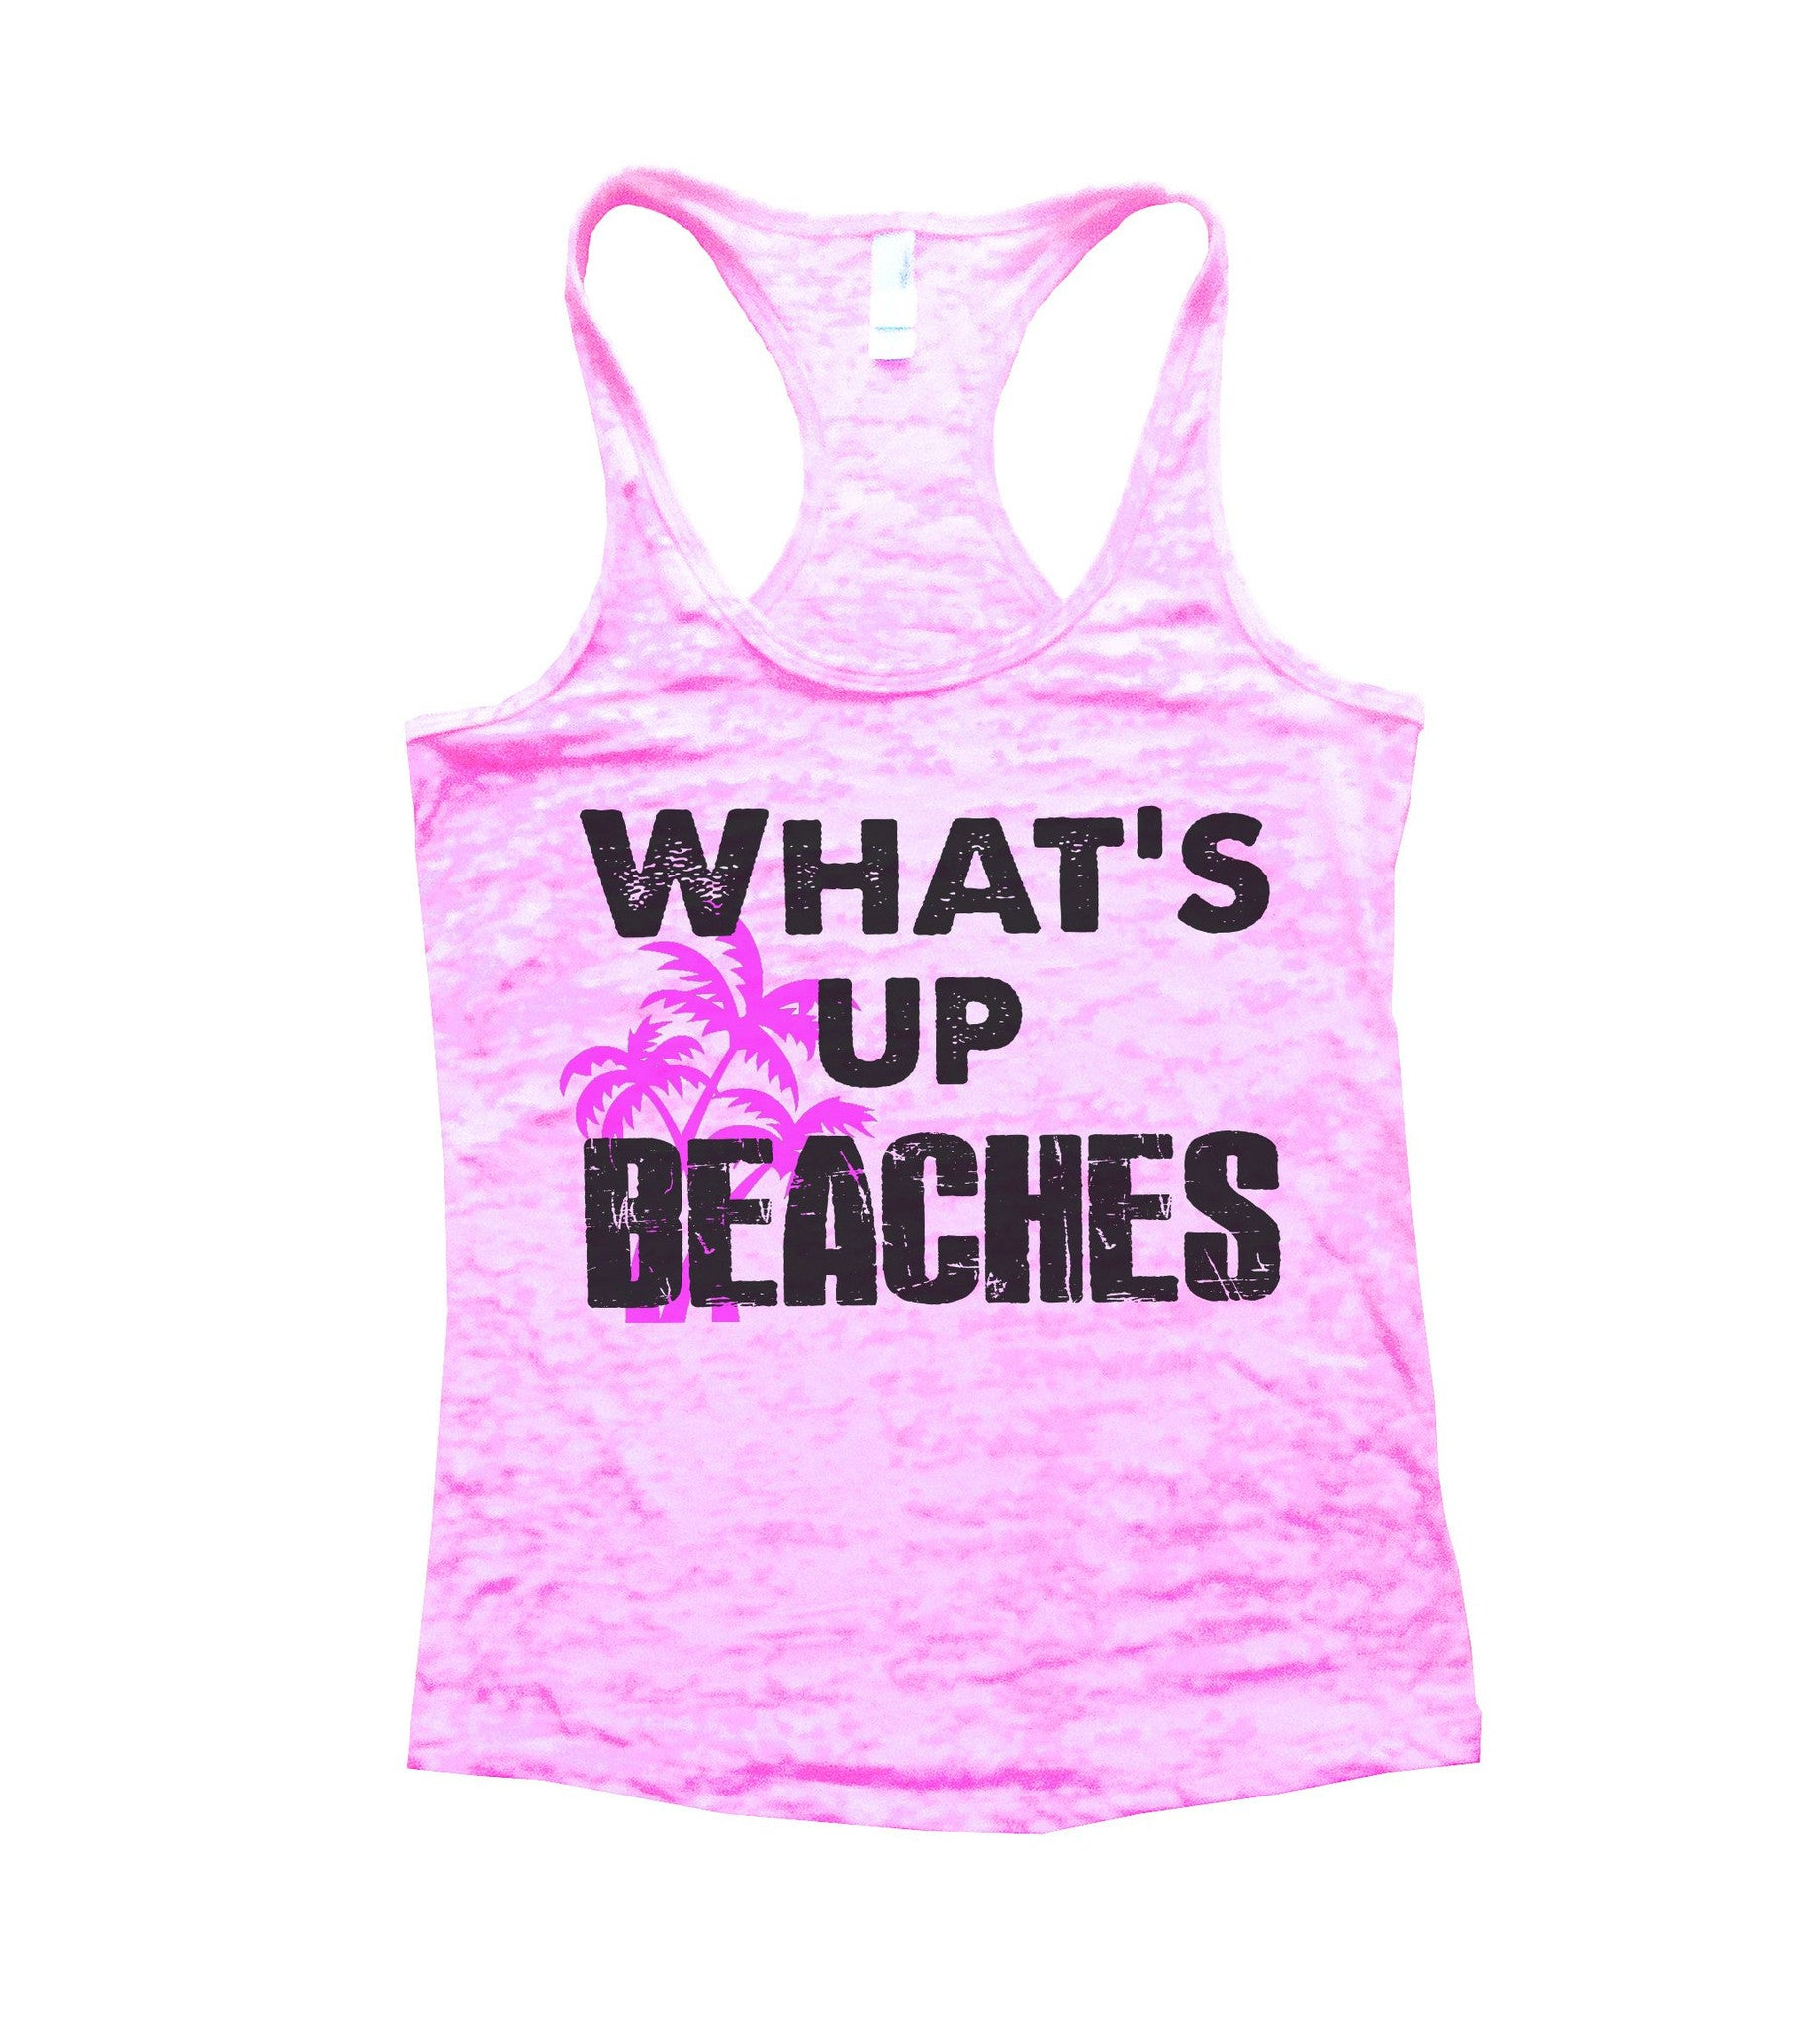 What'S Up Beaches Burnout Tank Top By BurnoutTankTops.com - 759 - Funny Shirts Tank Tops Burnouts and Triblends  - 2